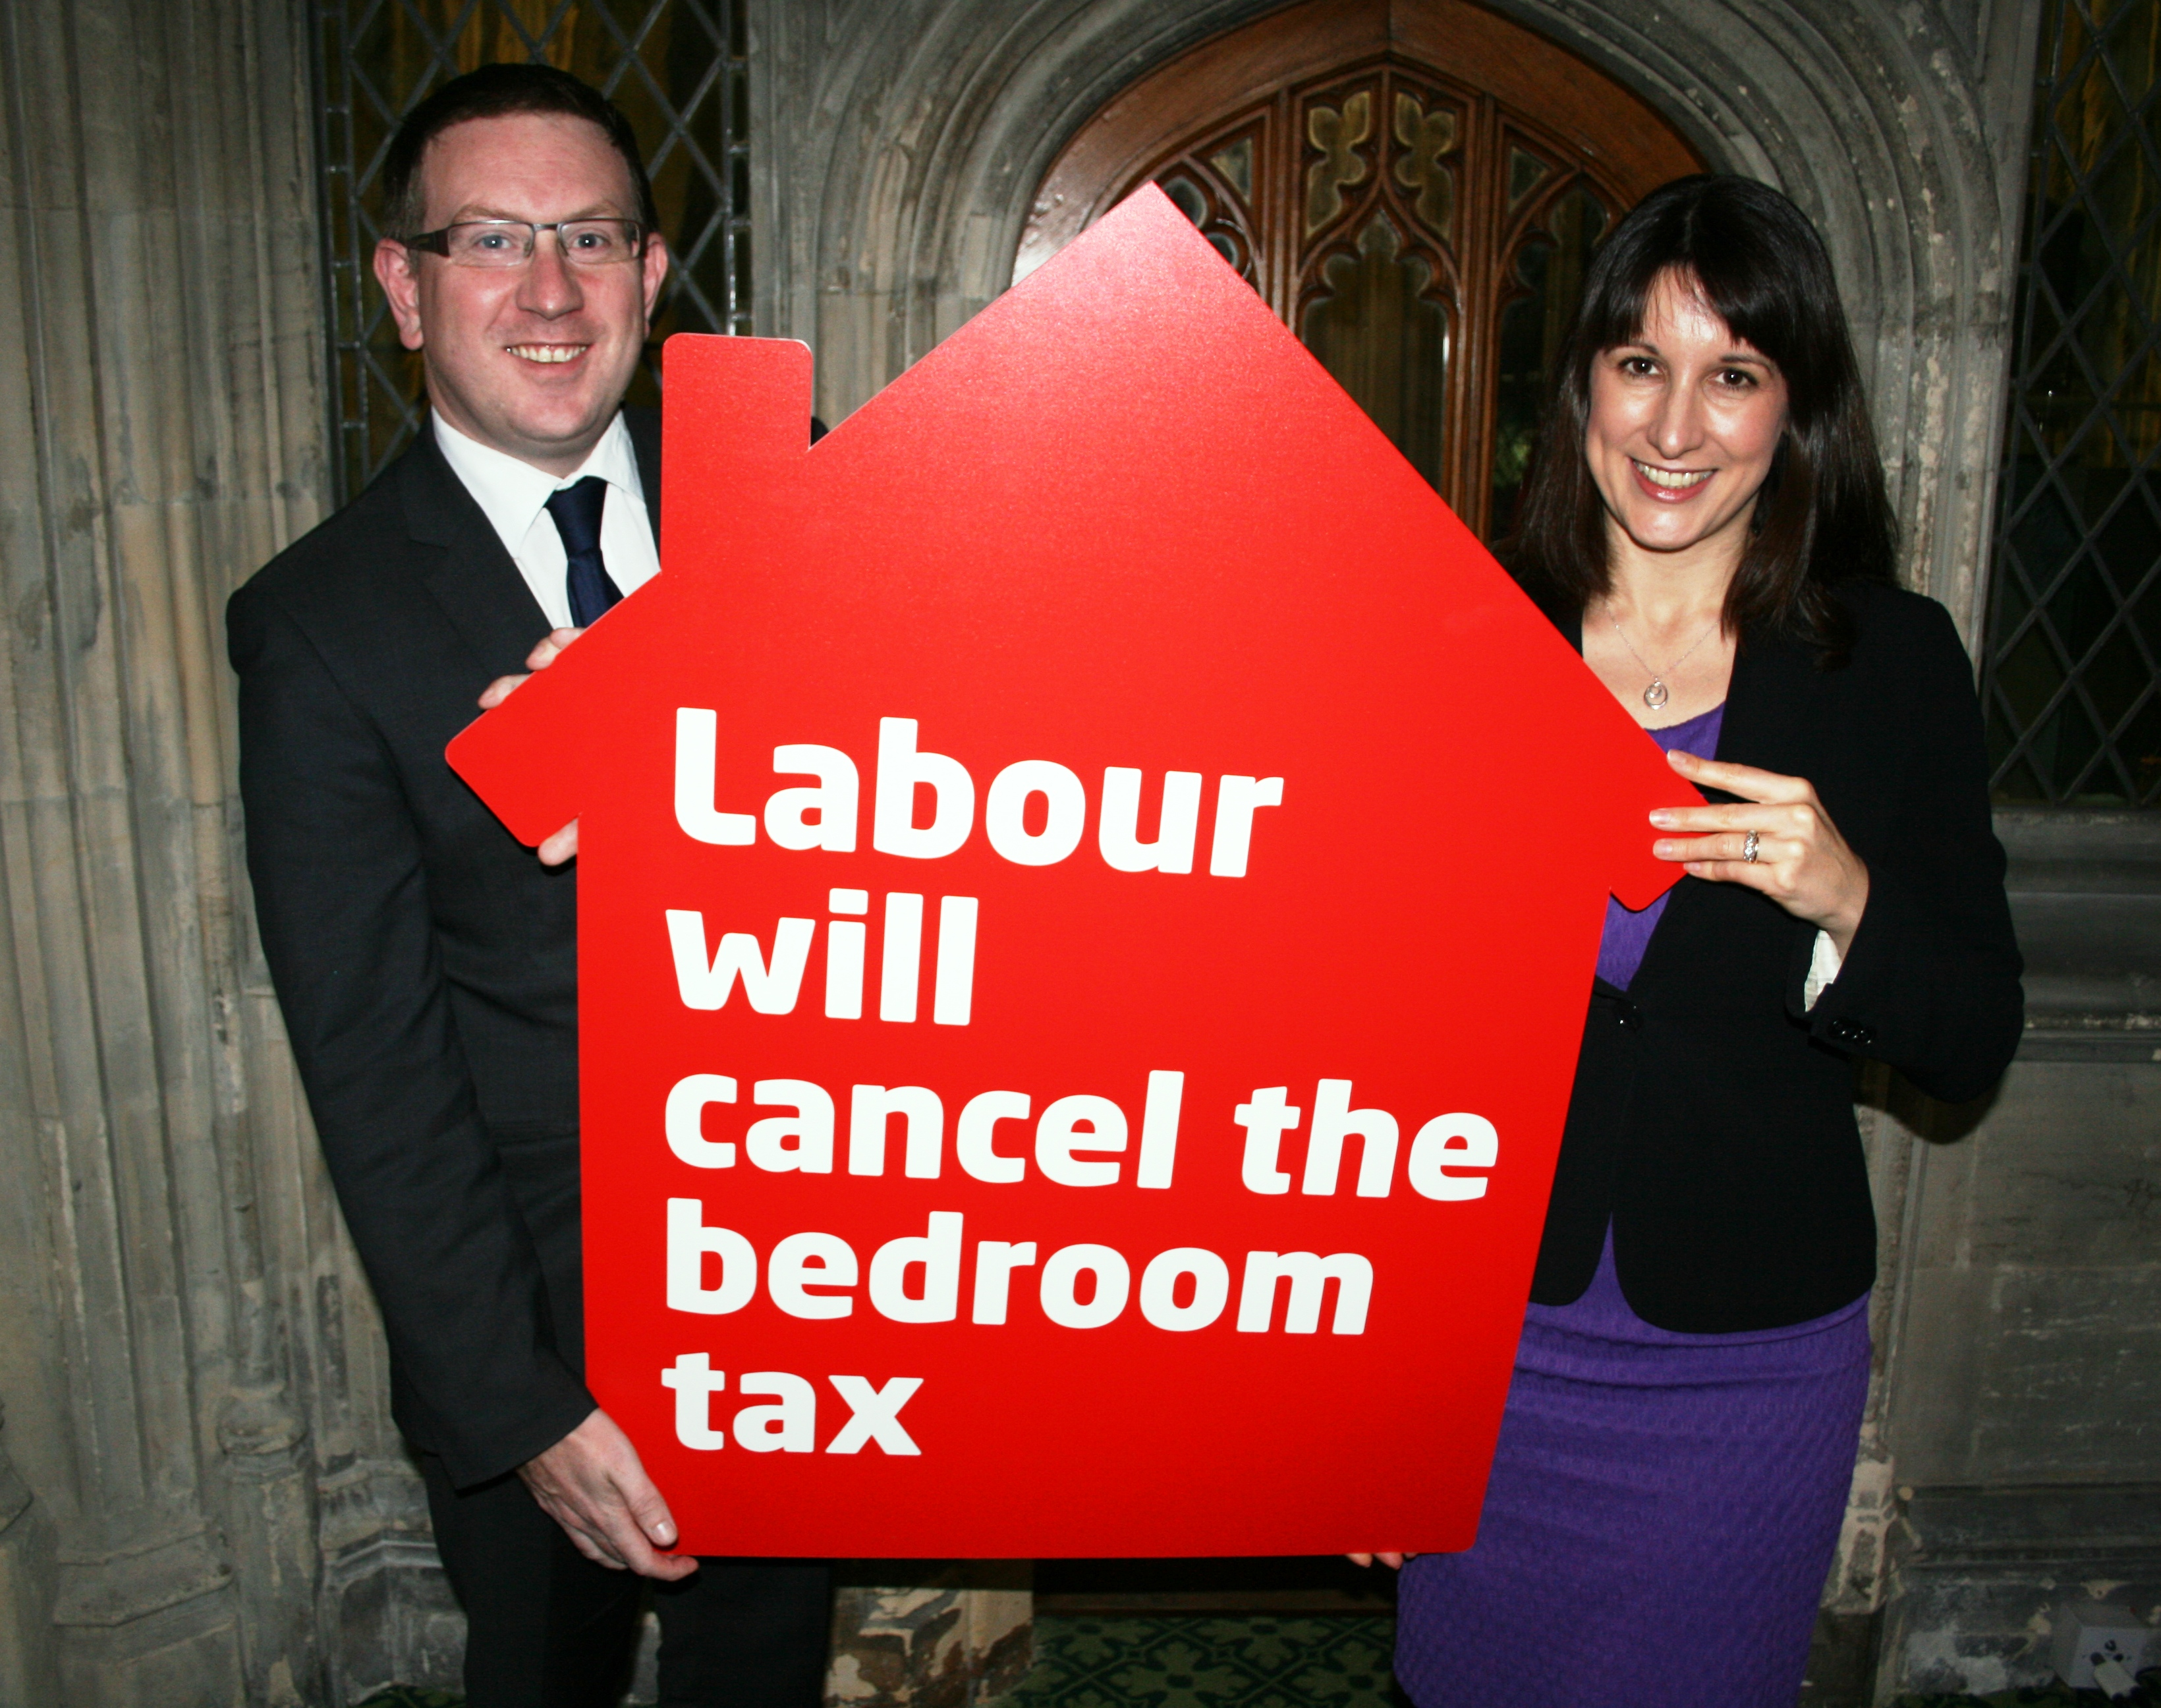 Mp Votes To Scrap Bedroom Tax In Commons Showdown Andrew Gwynne Mp